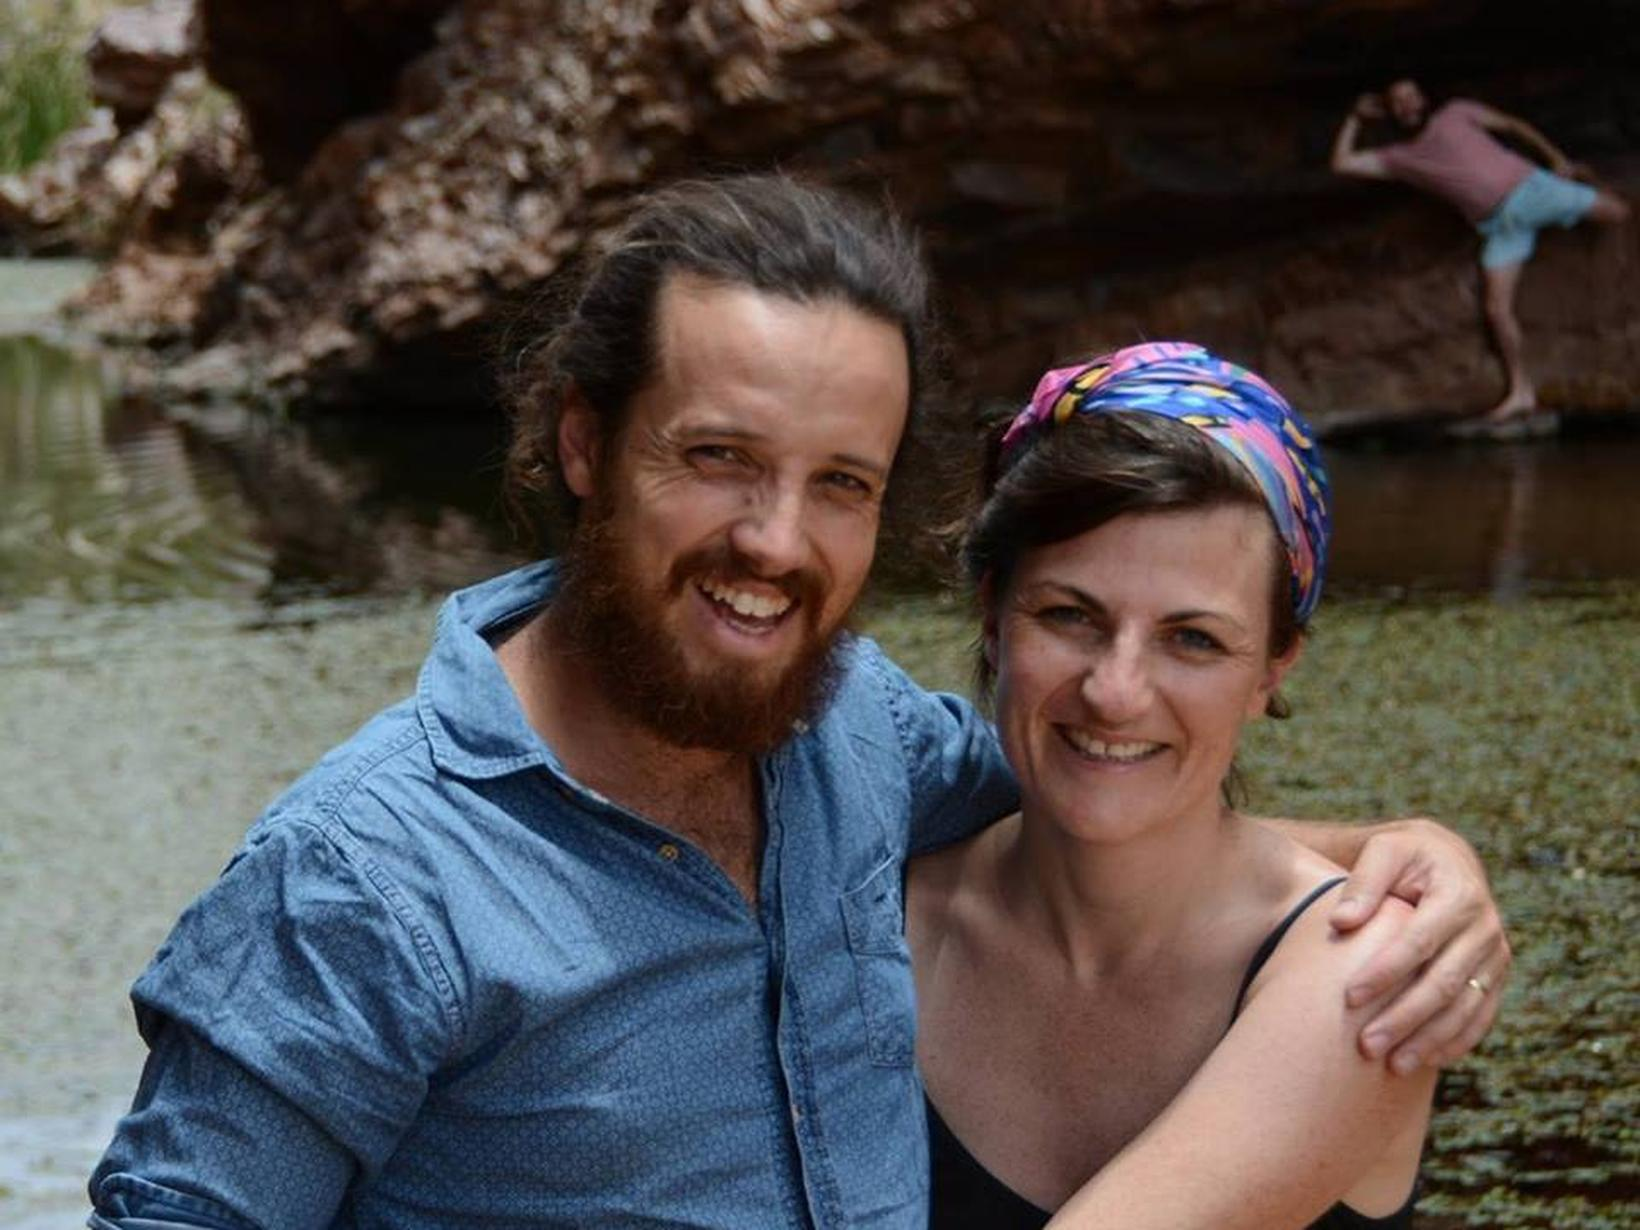 Nathan & Hayley from Alice Springs, Northern Territory, Australia